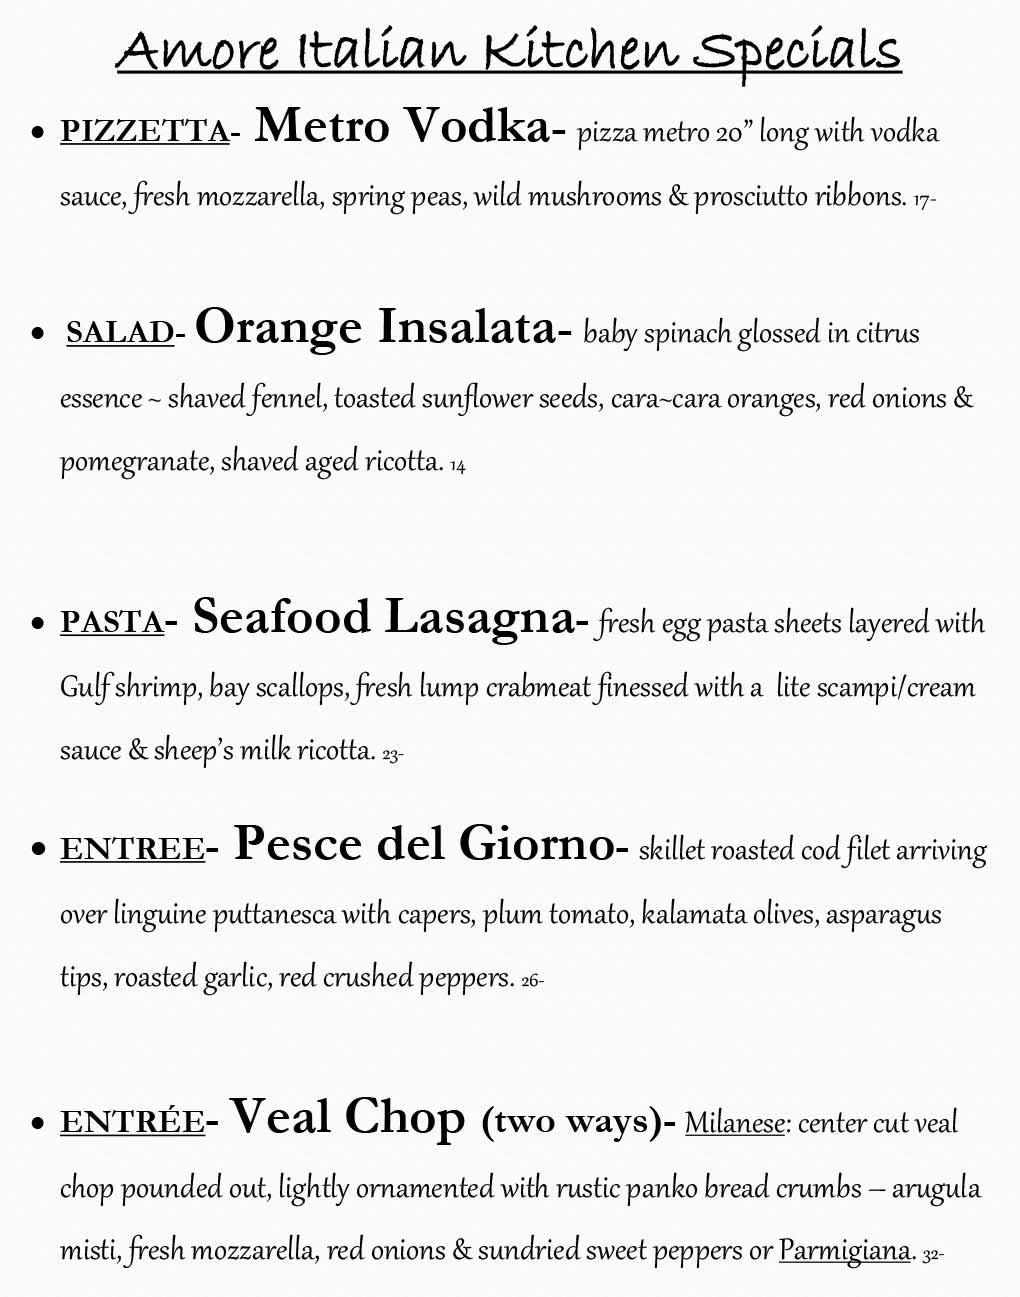 Amore Weekly Specials from 03/16 - 03/22